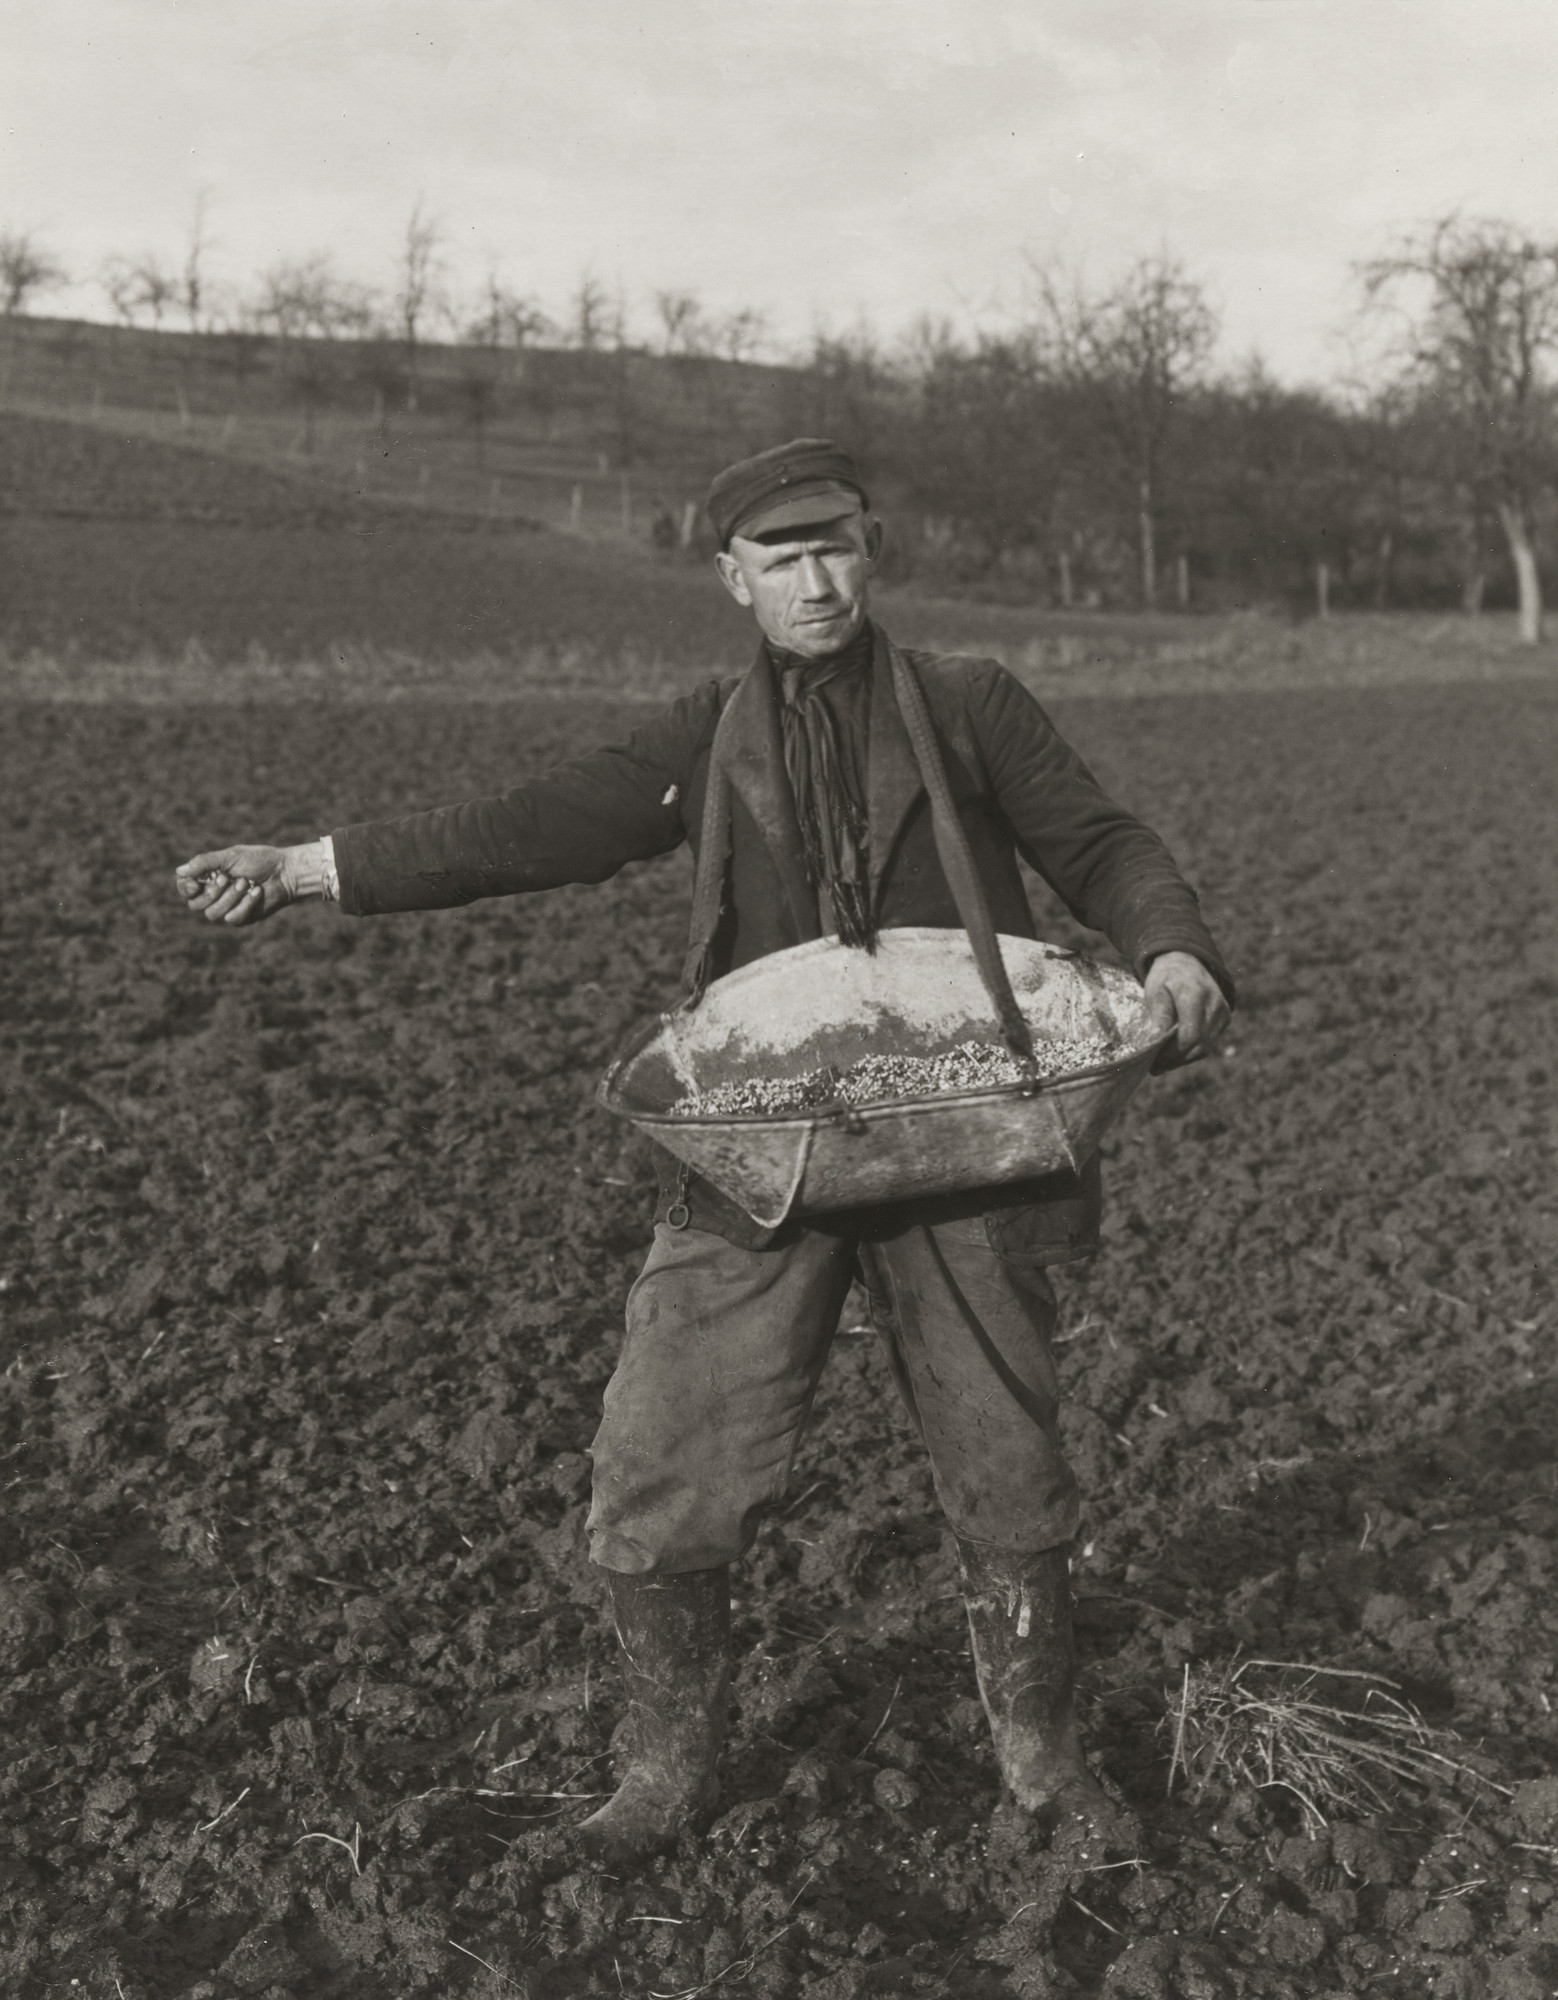 August Sander. Farmer Sowing. 1952